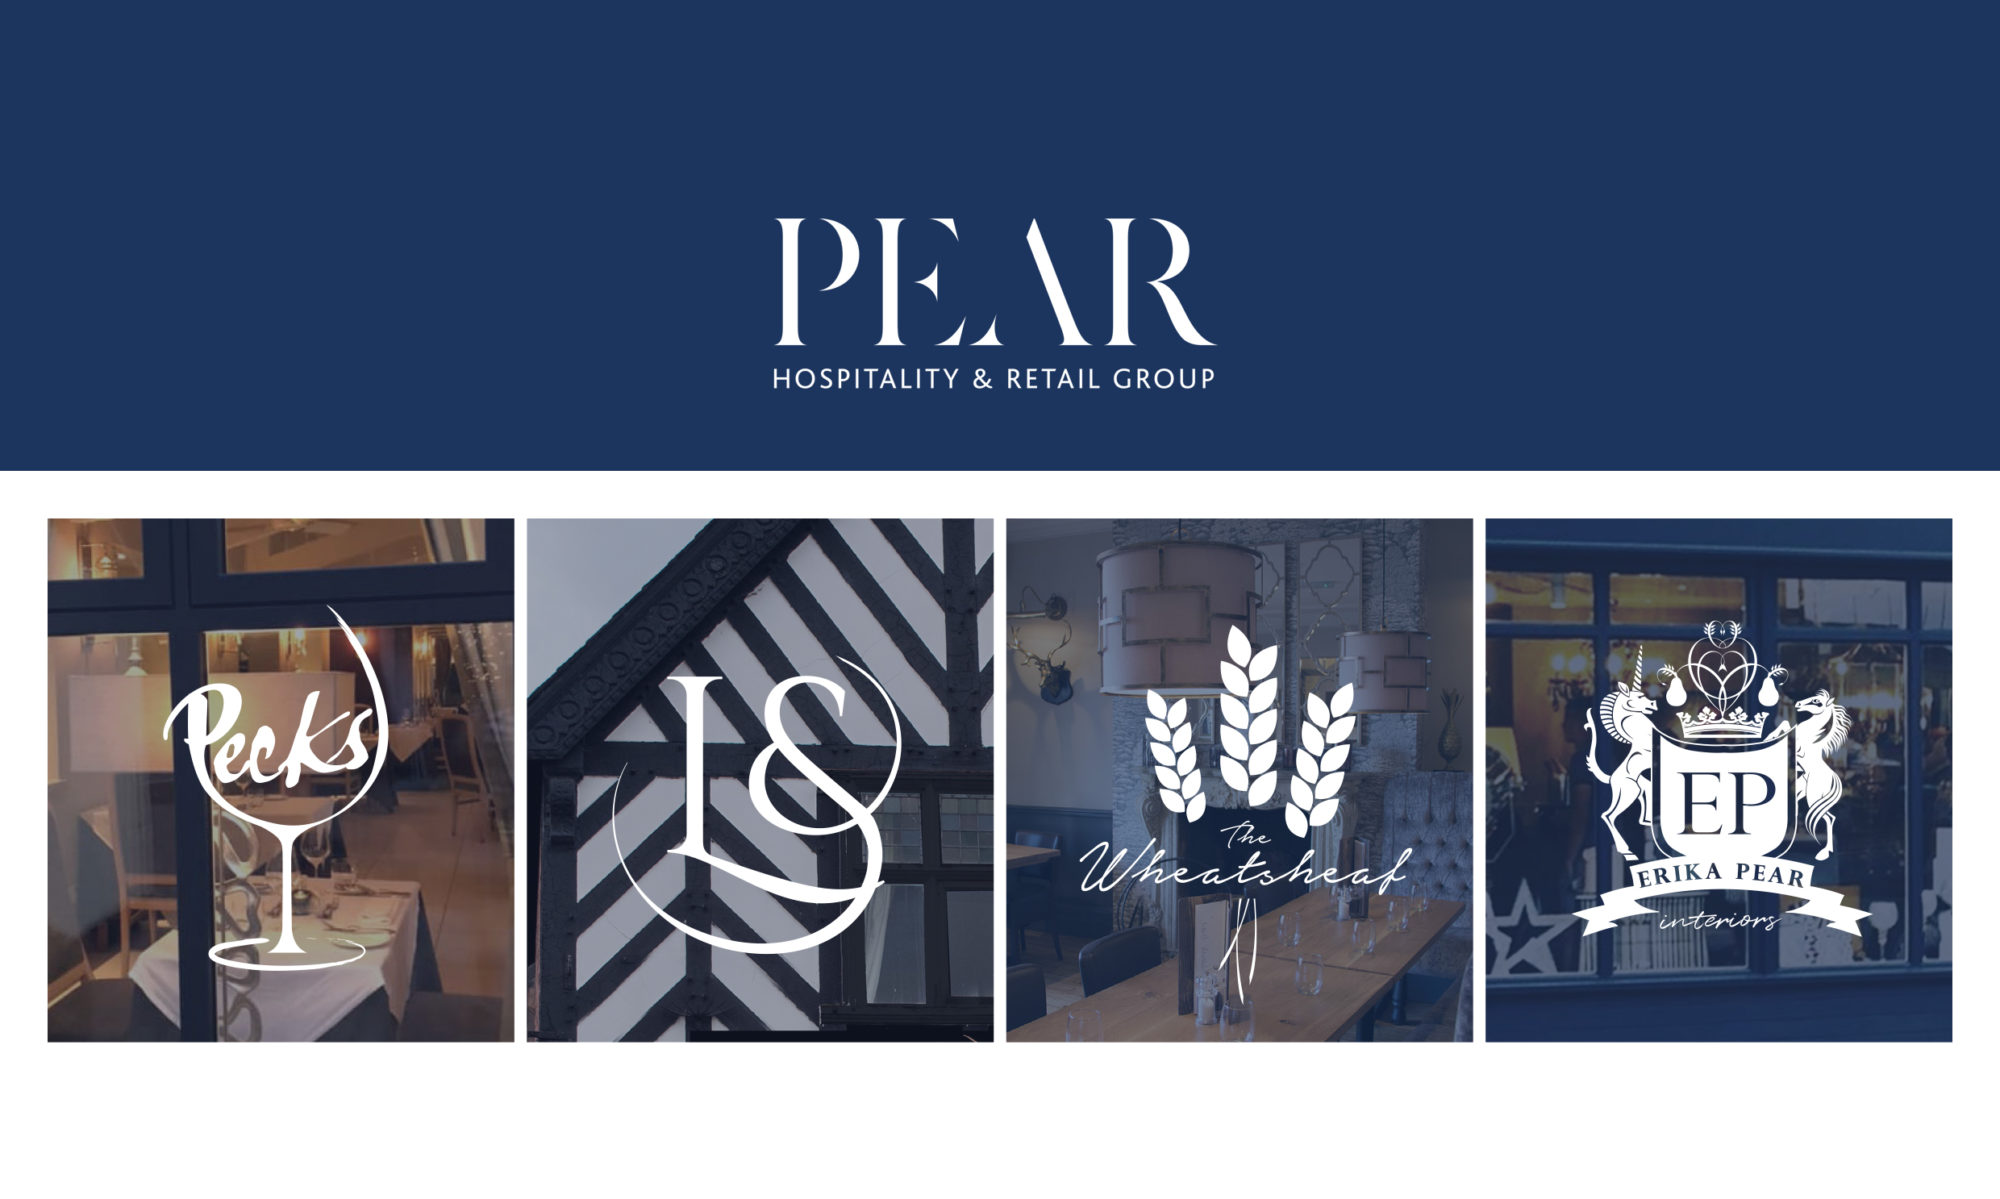 Pear Hospitality & Retail Holdings Ltd